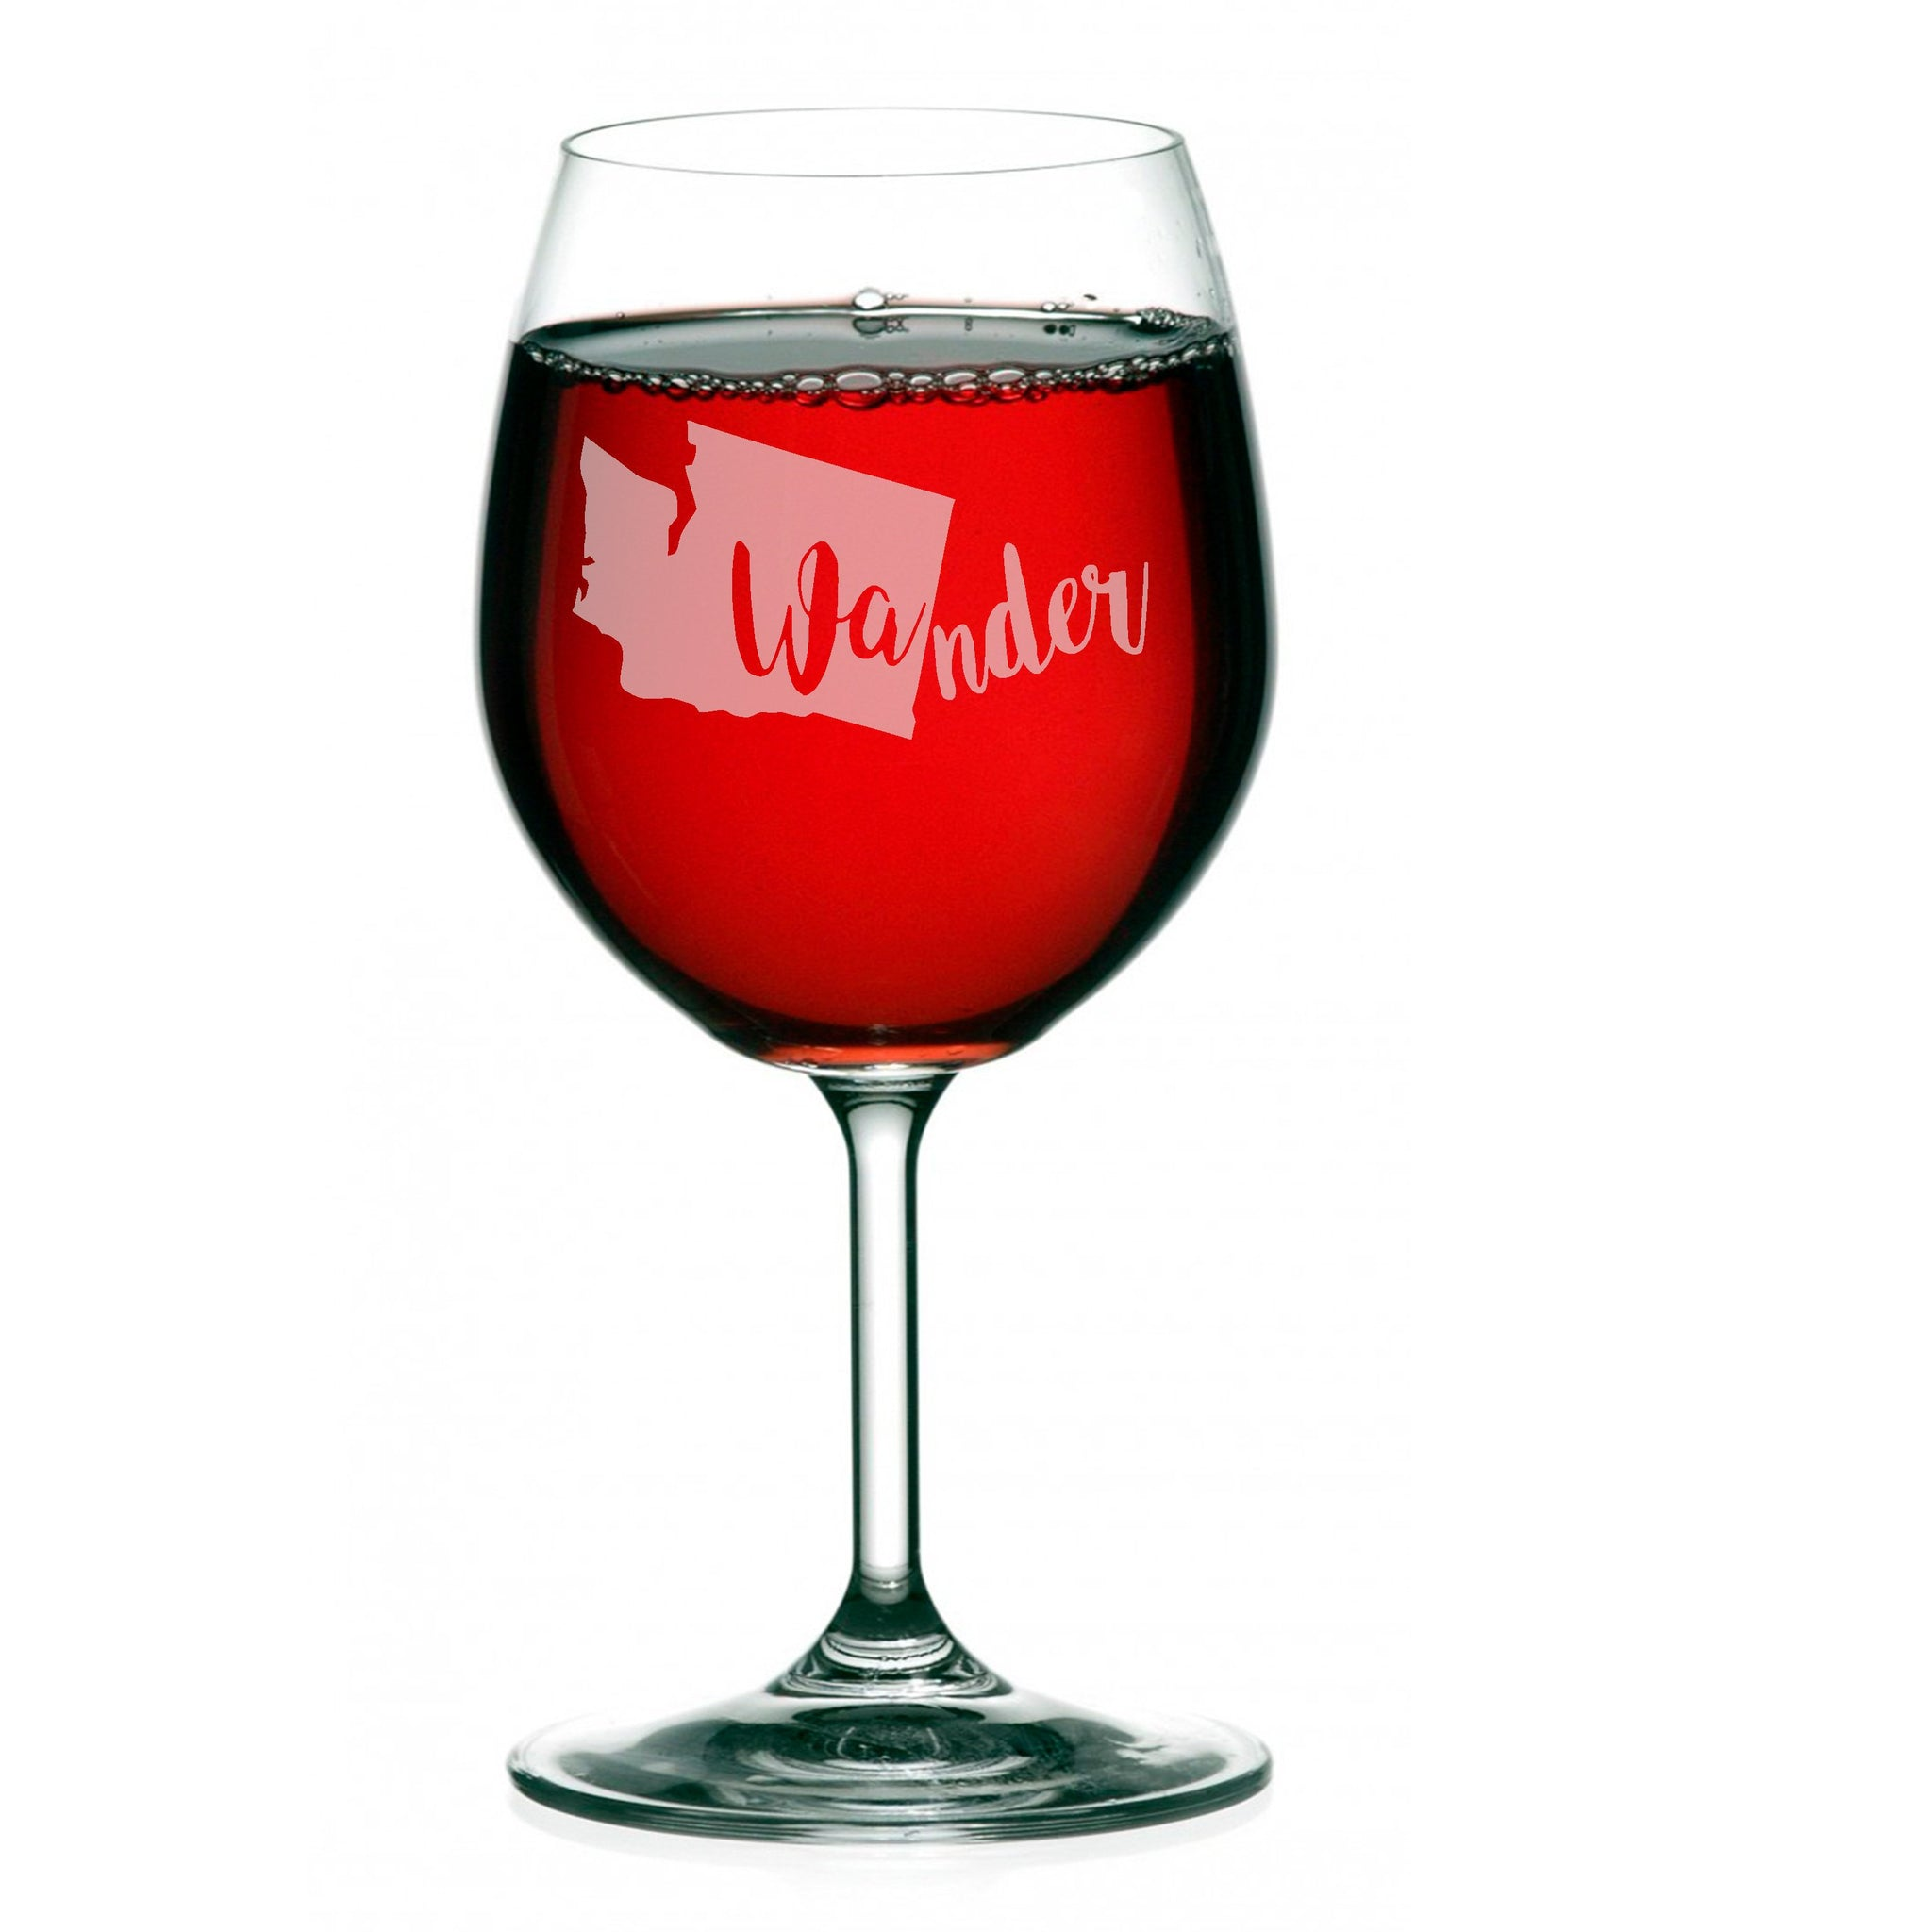 WAnder Wine Glass, Personalized, Hand Etched - The Personalize Shop